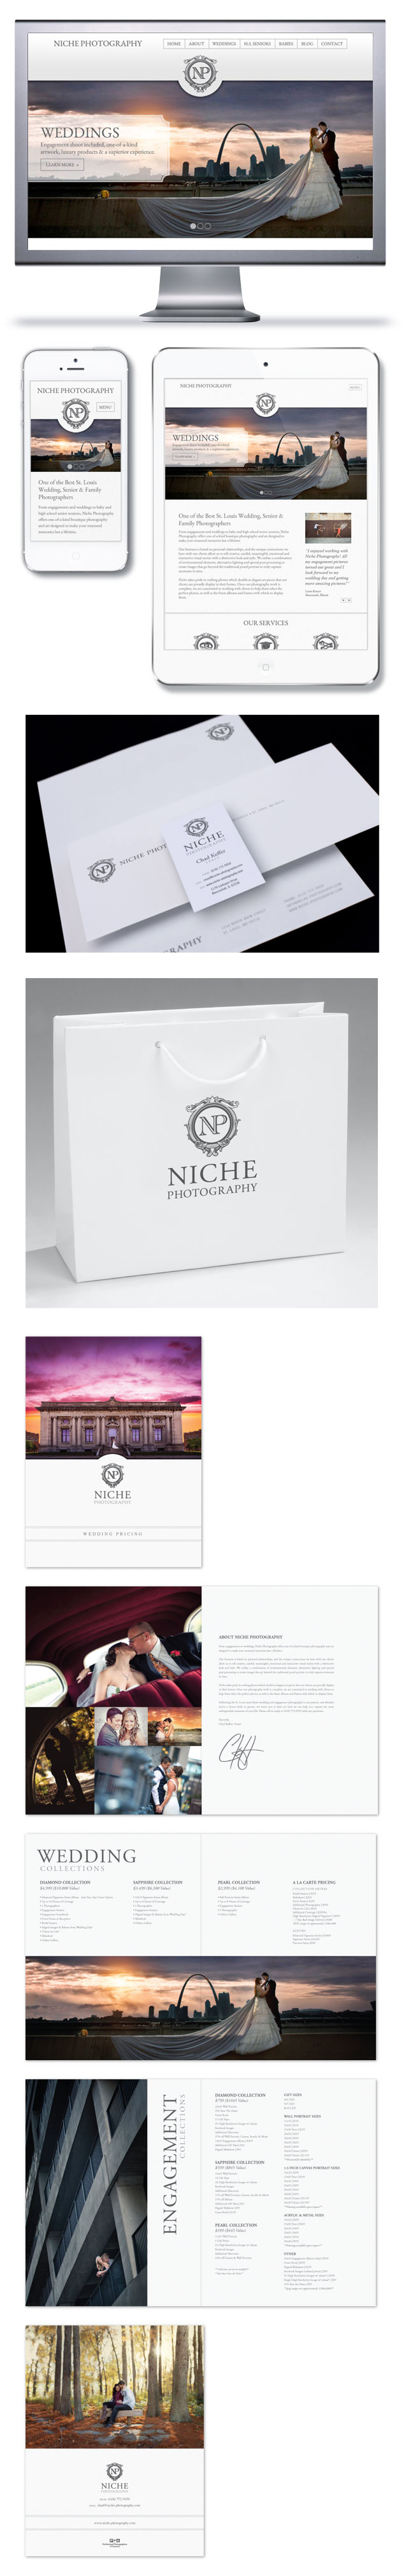 Niche Photography Branding & Website